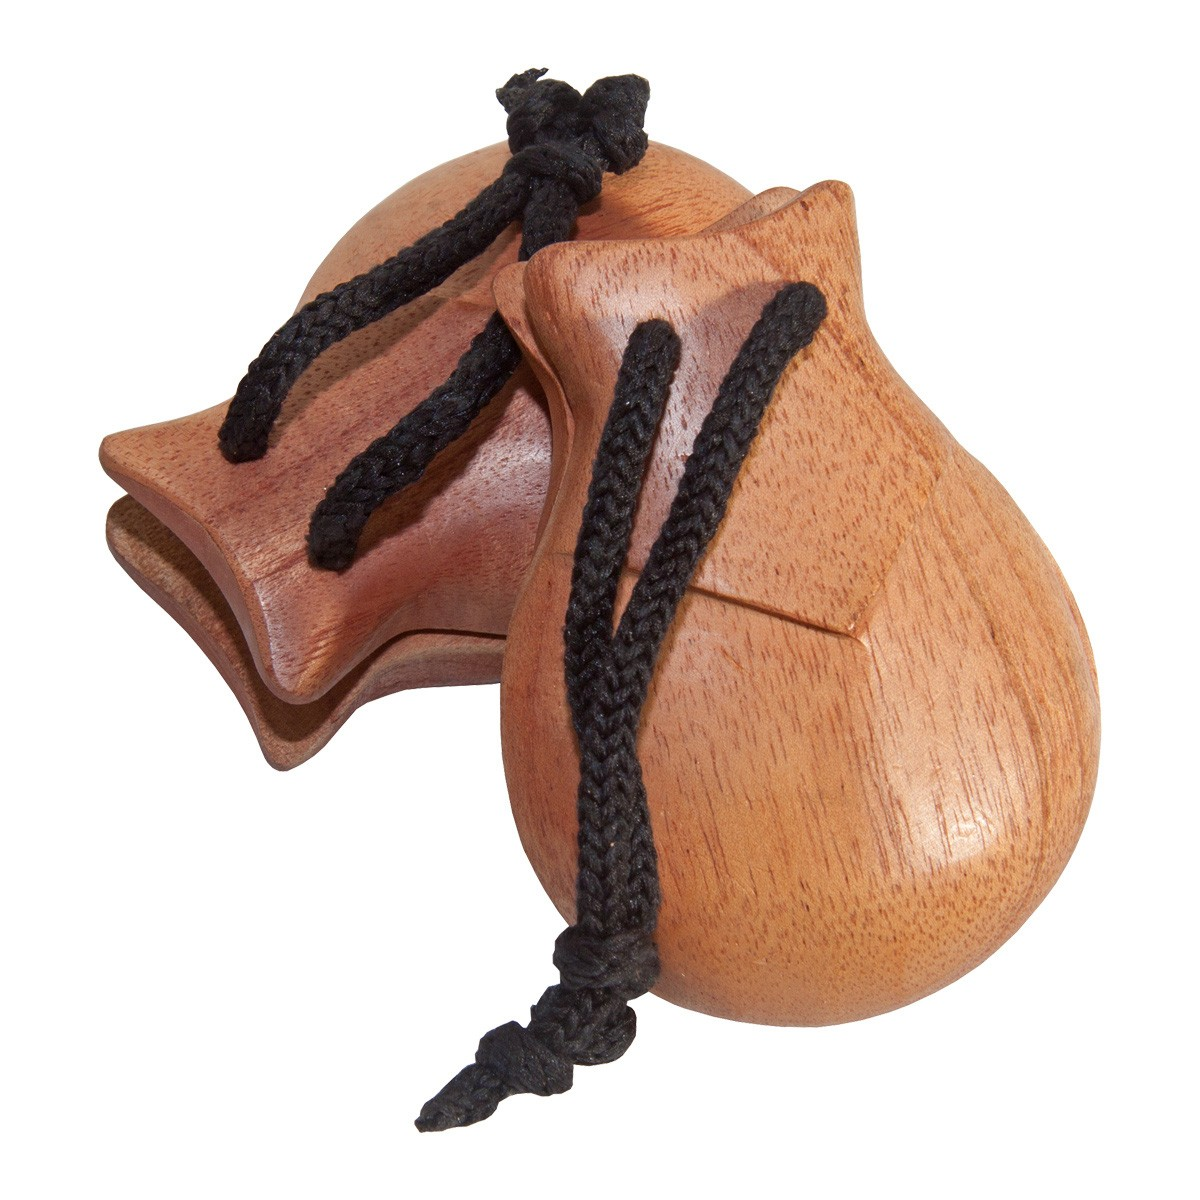 DOBANI Red Cedar Castanets 2.63' - Pair *Blemished